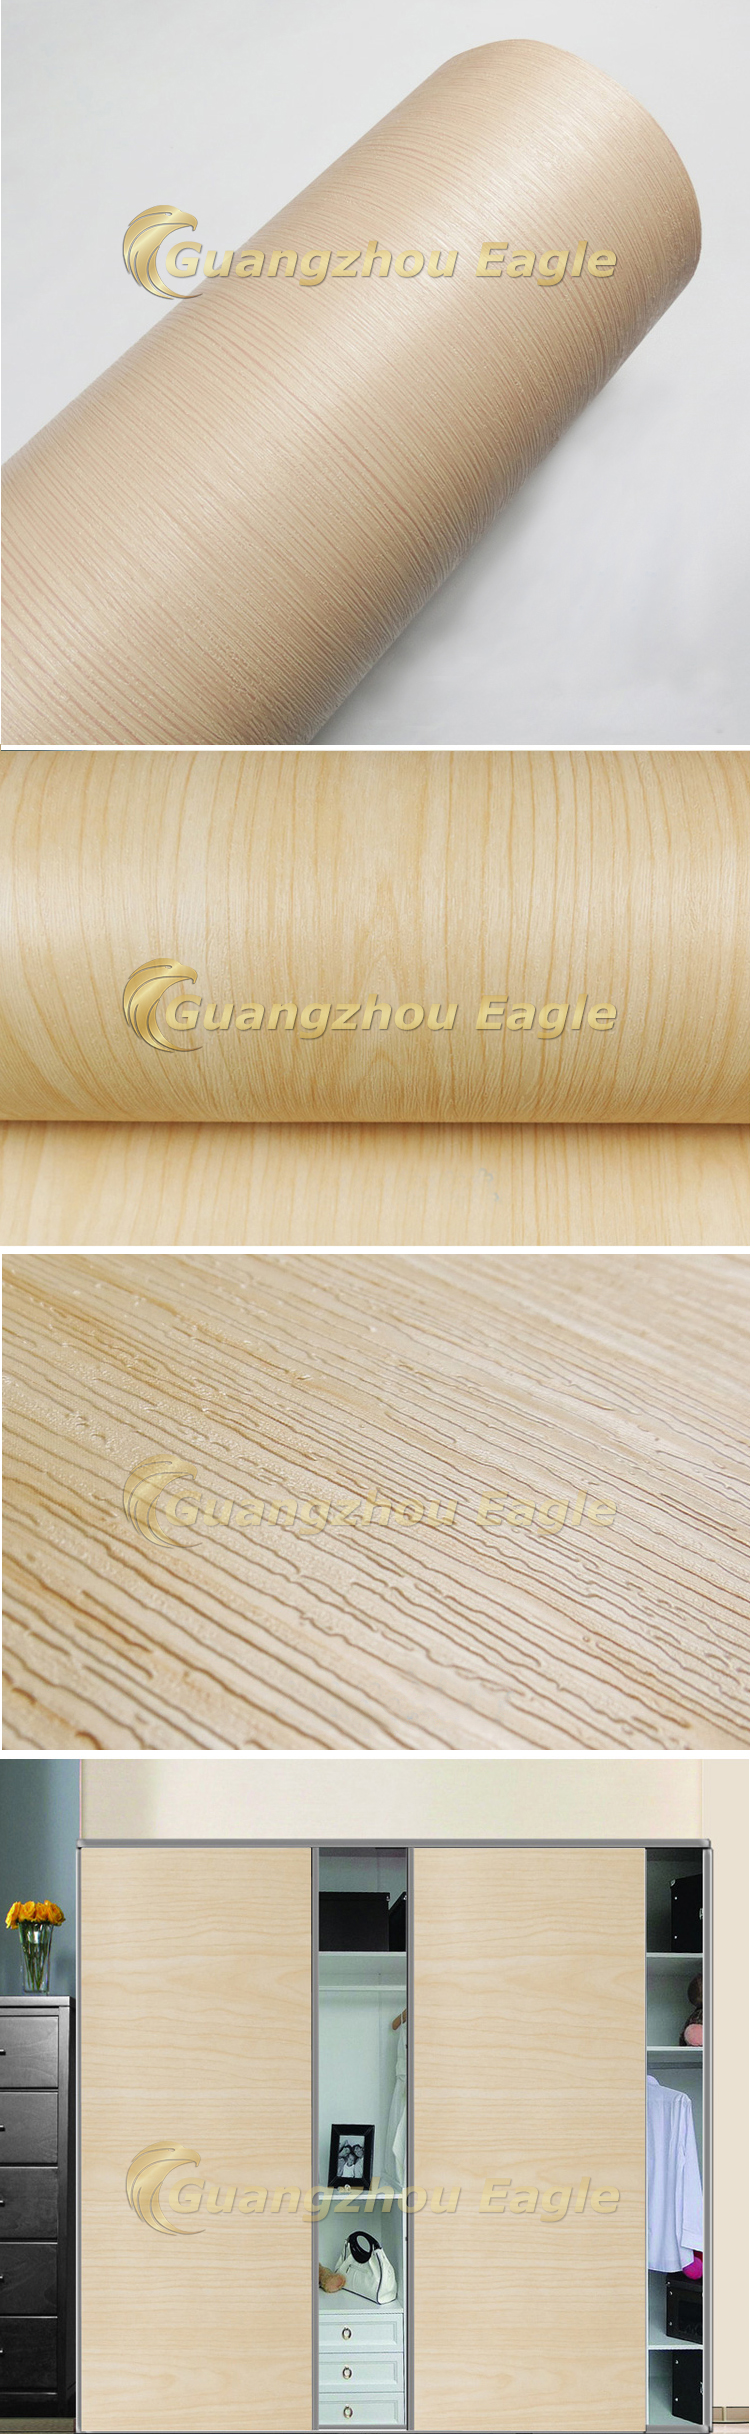 Pvc Wood Grain Self Adhesive Vinyl Film For Furniture Pvc